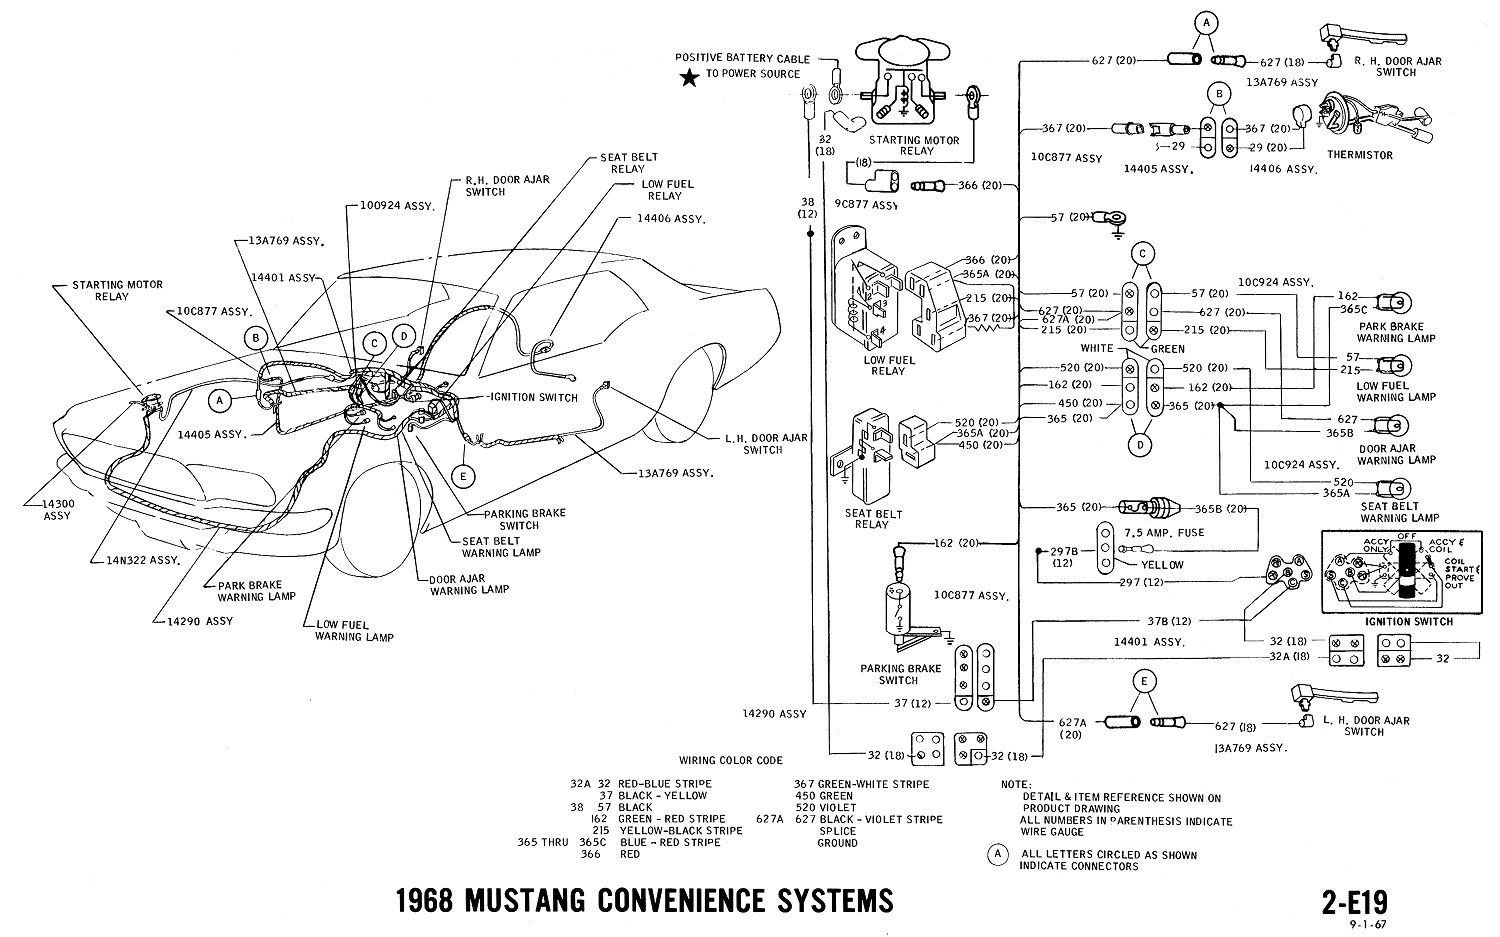 1968 mustang wiring diagram convenience systems 1968 mustang wiring diagrams and vacuum schematics average joe Dodge Ram Wiring Diagram at mifinder.co